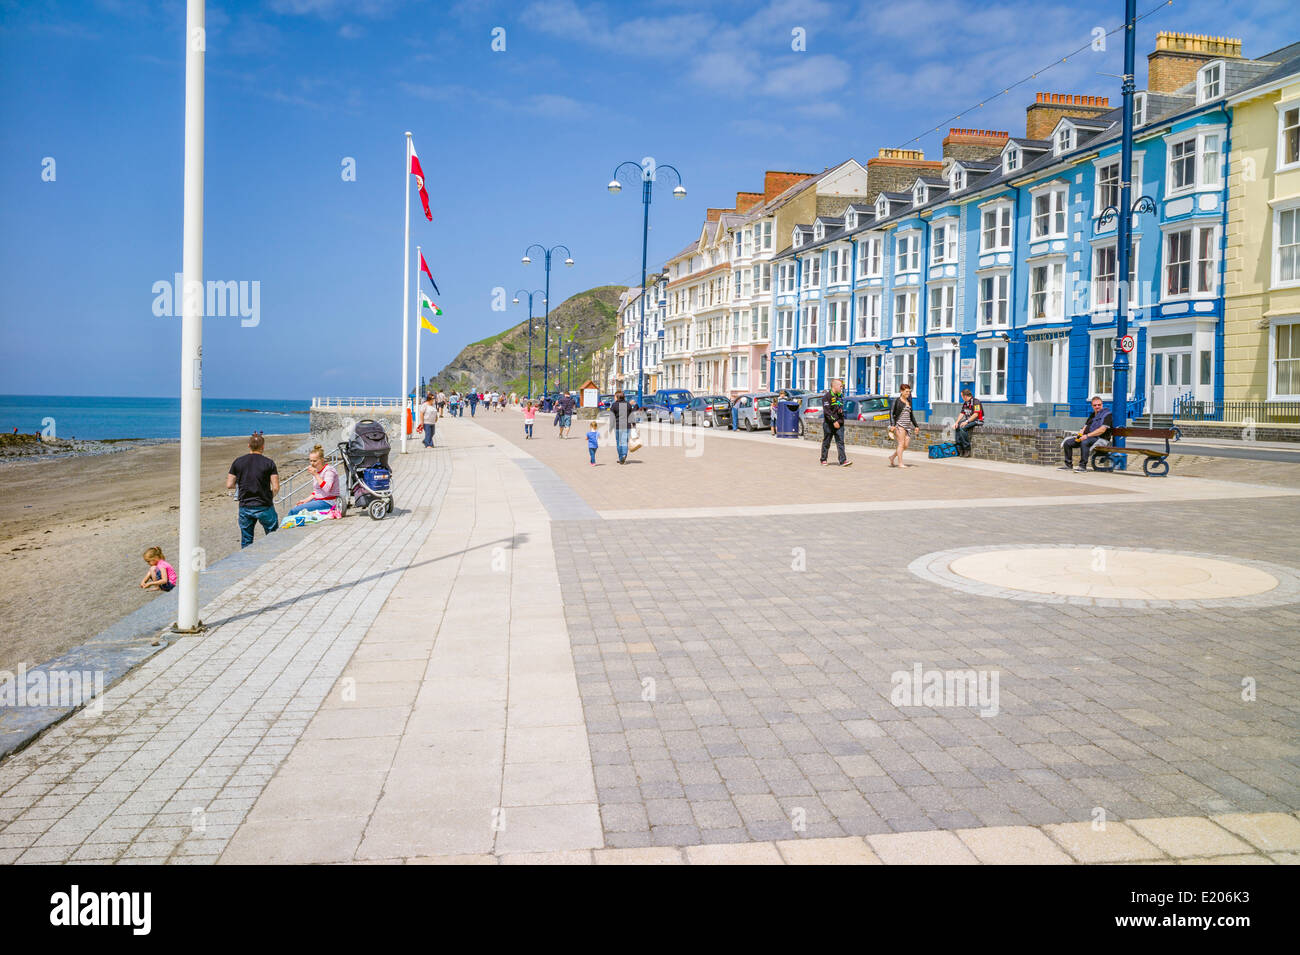 A view looking north along the newly refurbished promenade in Aberystwyth Ceredigion towards Constitution hill, - Stock Image